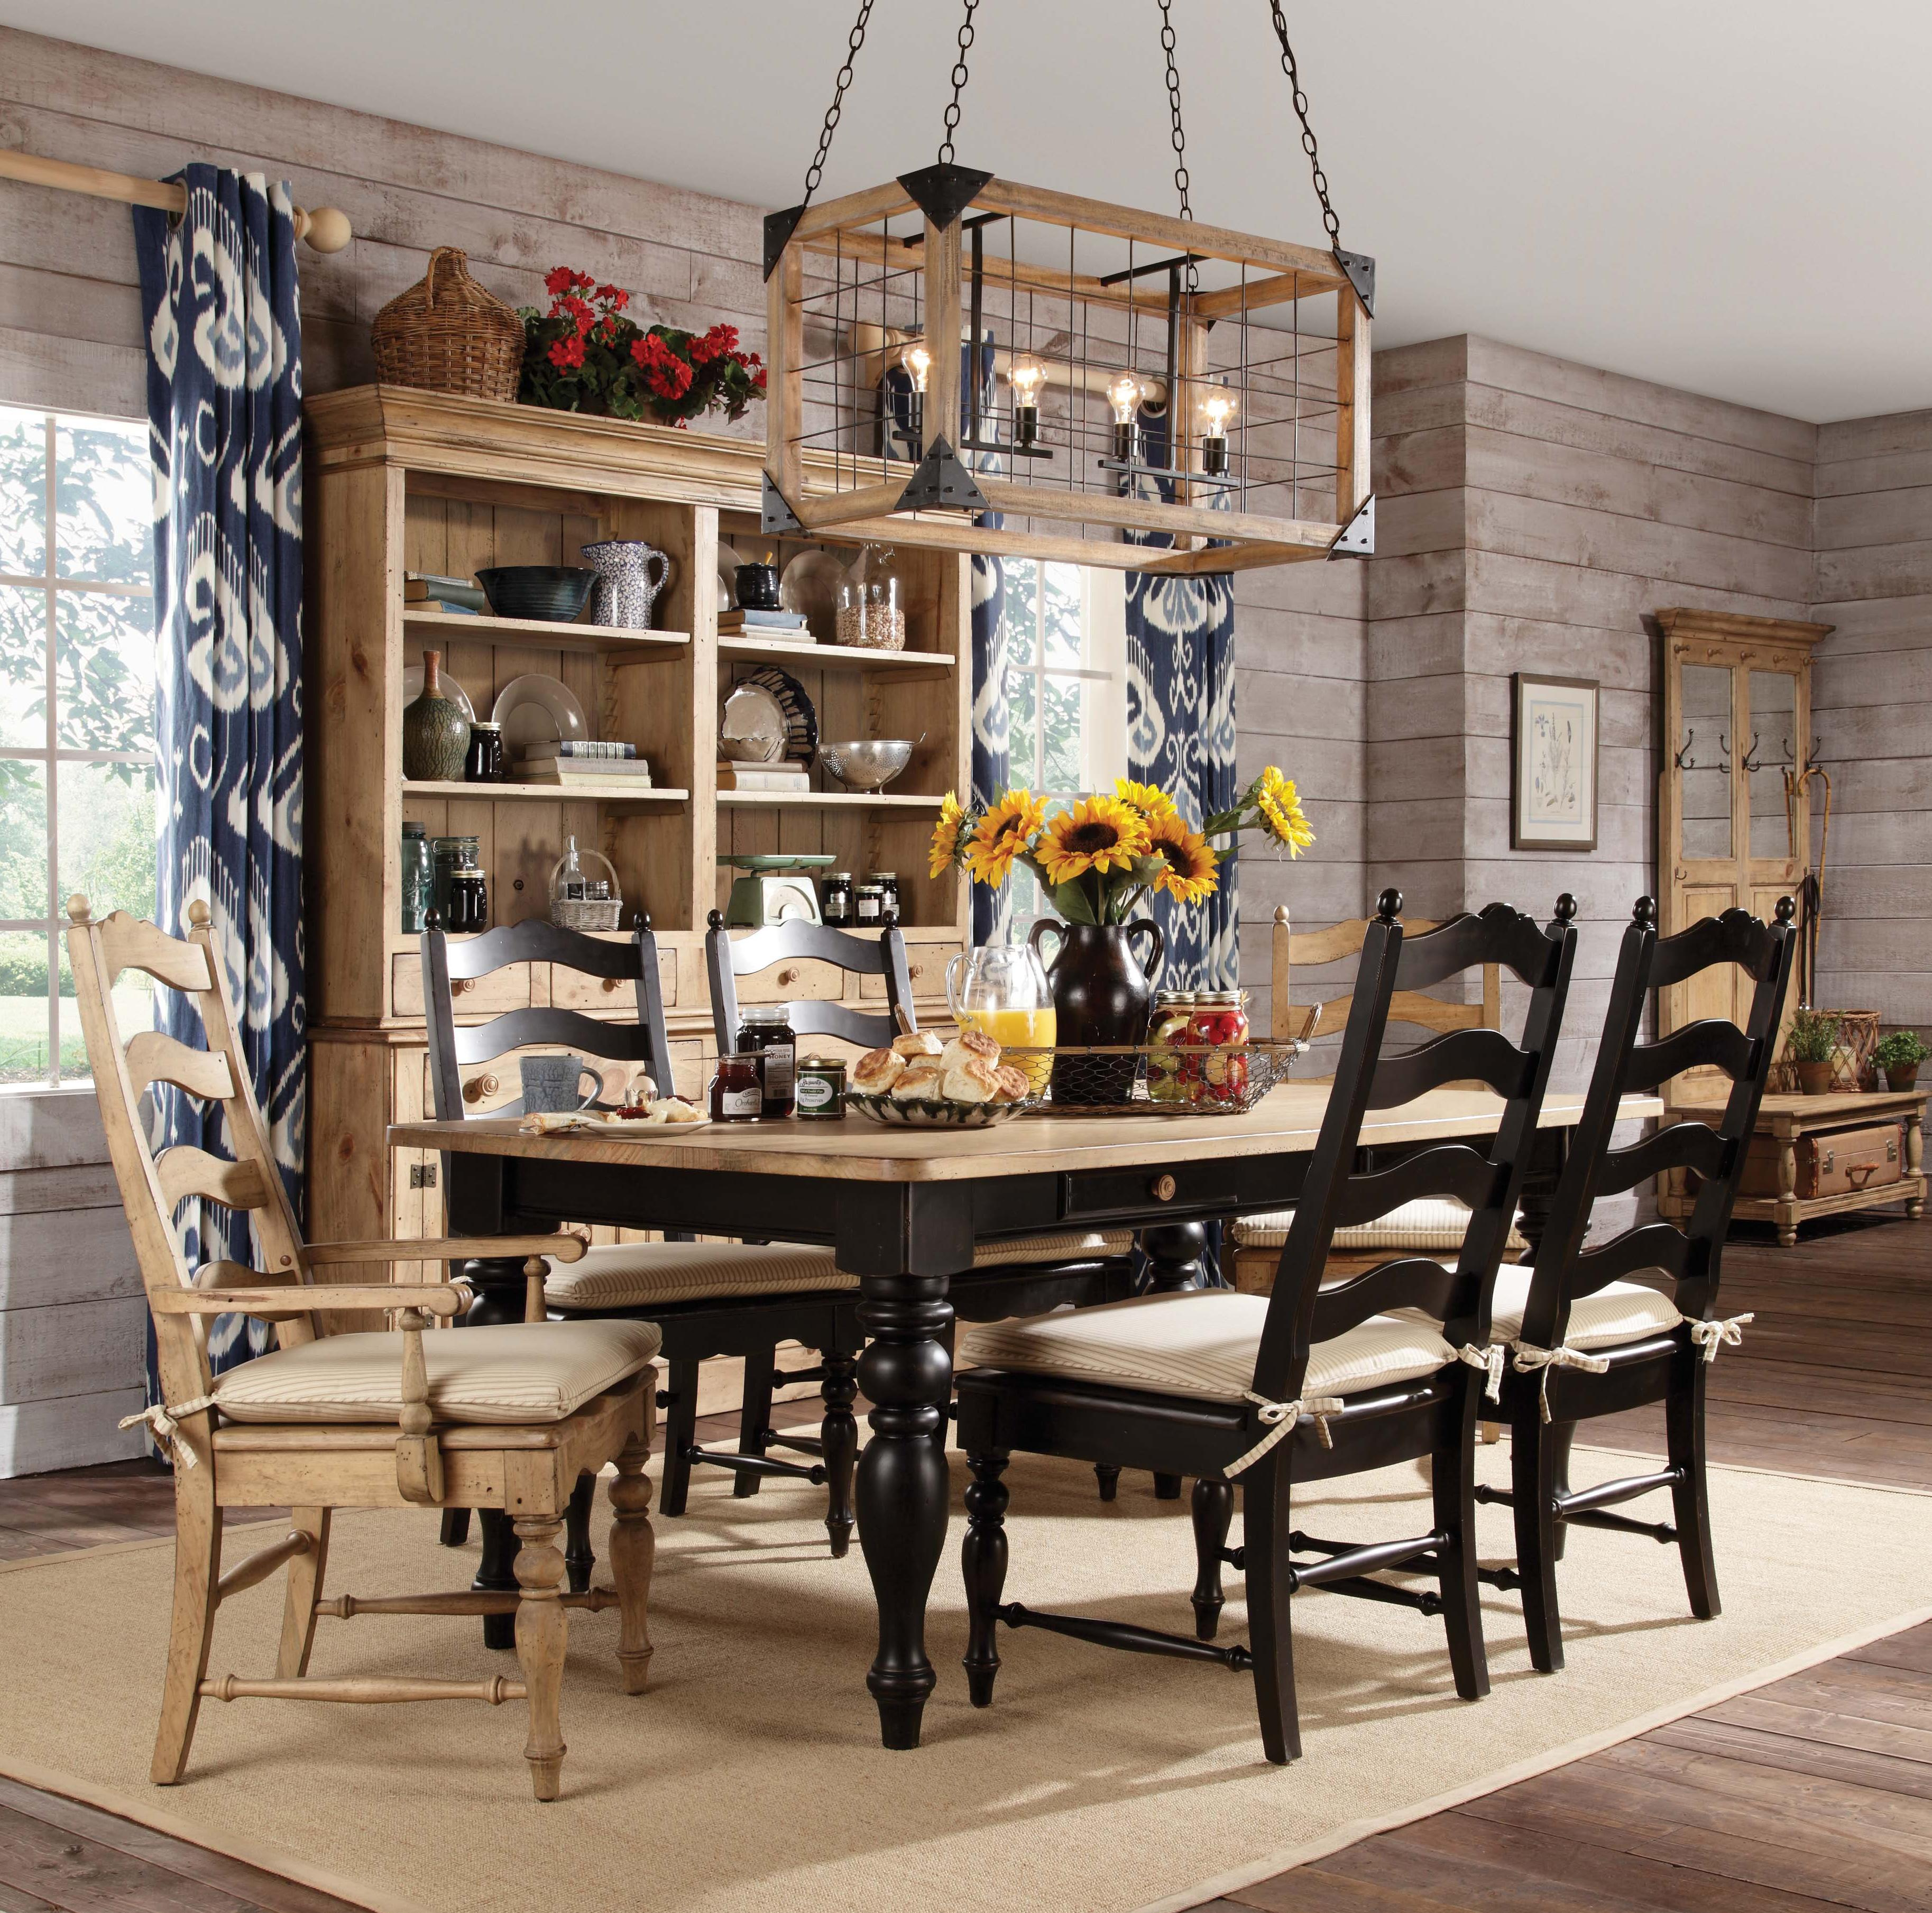 Kincaid Furniture Homecoming Formal Dining Room Group - Item Number: 33 Dining Room Group 1